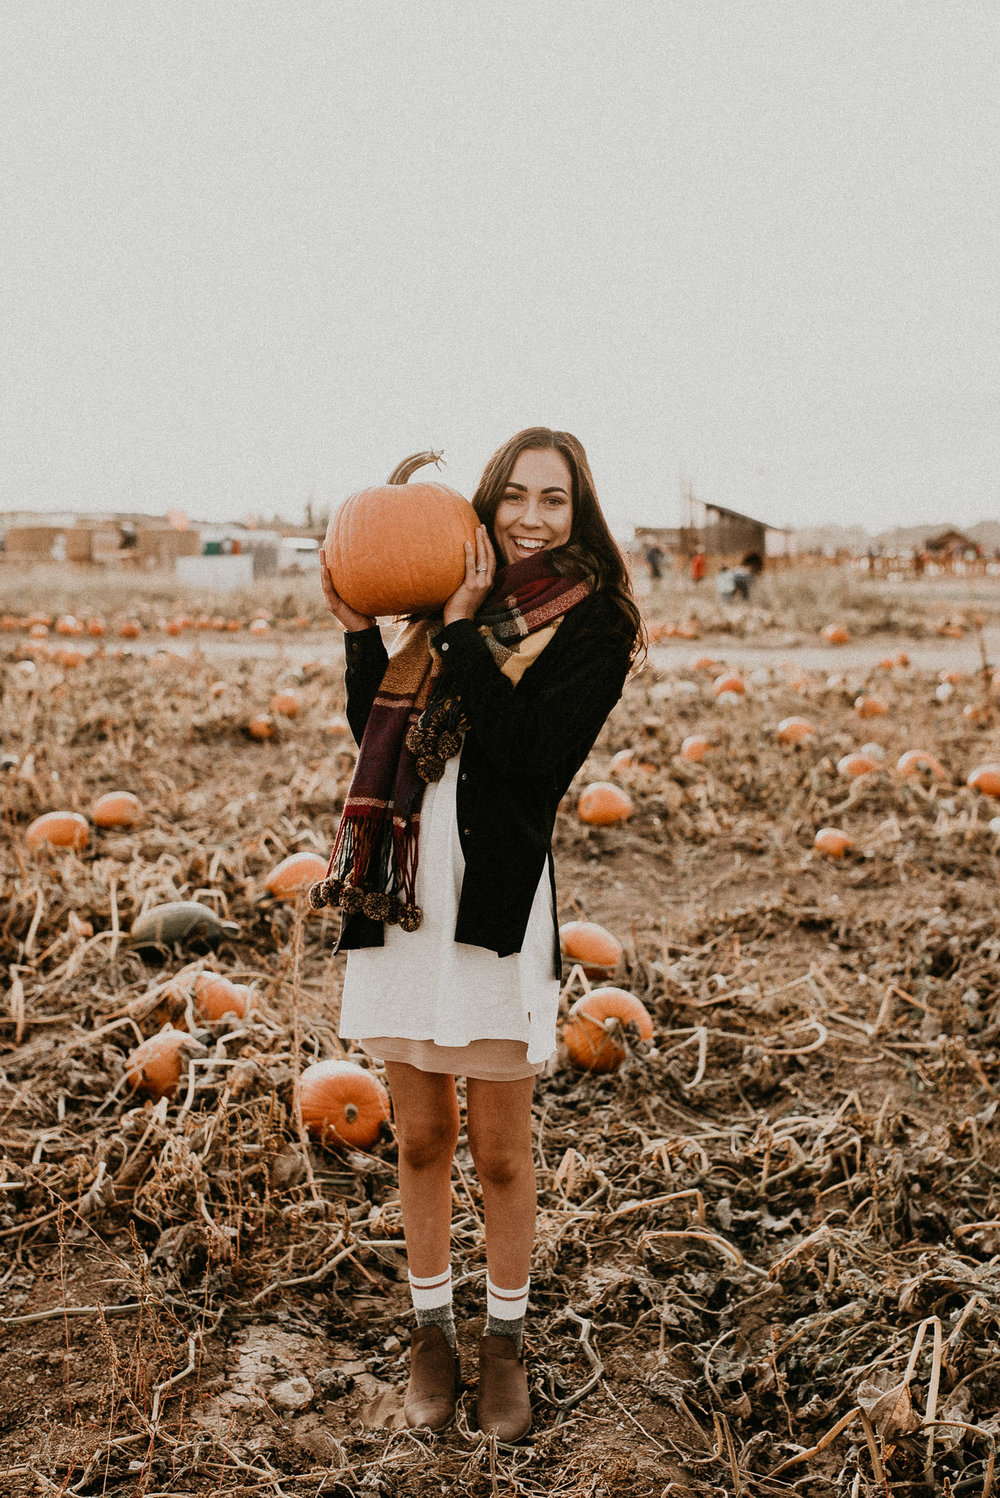 Boise Senior Boudoir Wedding Photographer Makayla Madden Photography Idaho Farmstead Corn Maze Fall Portrait Outfit Ideas Inspiration Plaid Scarf Pumpkin Patch Halloween Senior Session Ideas